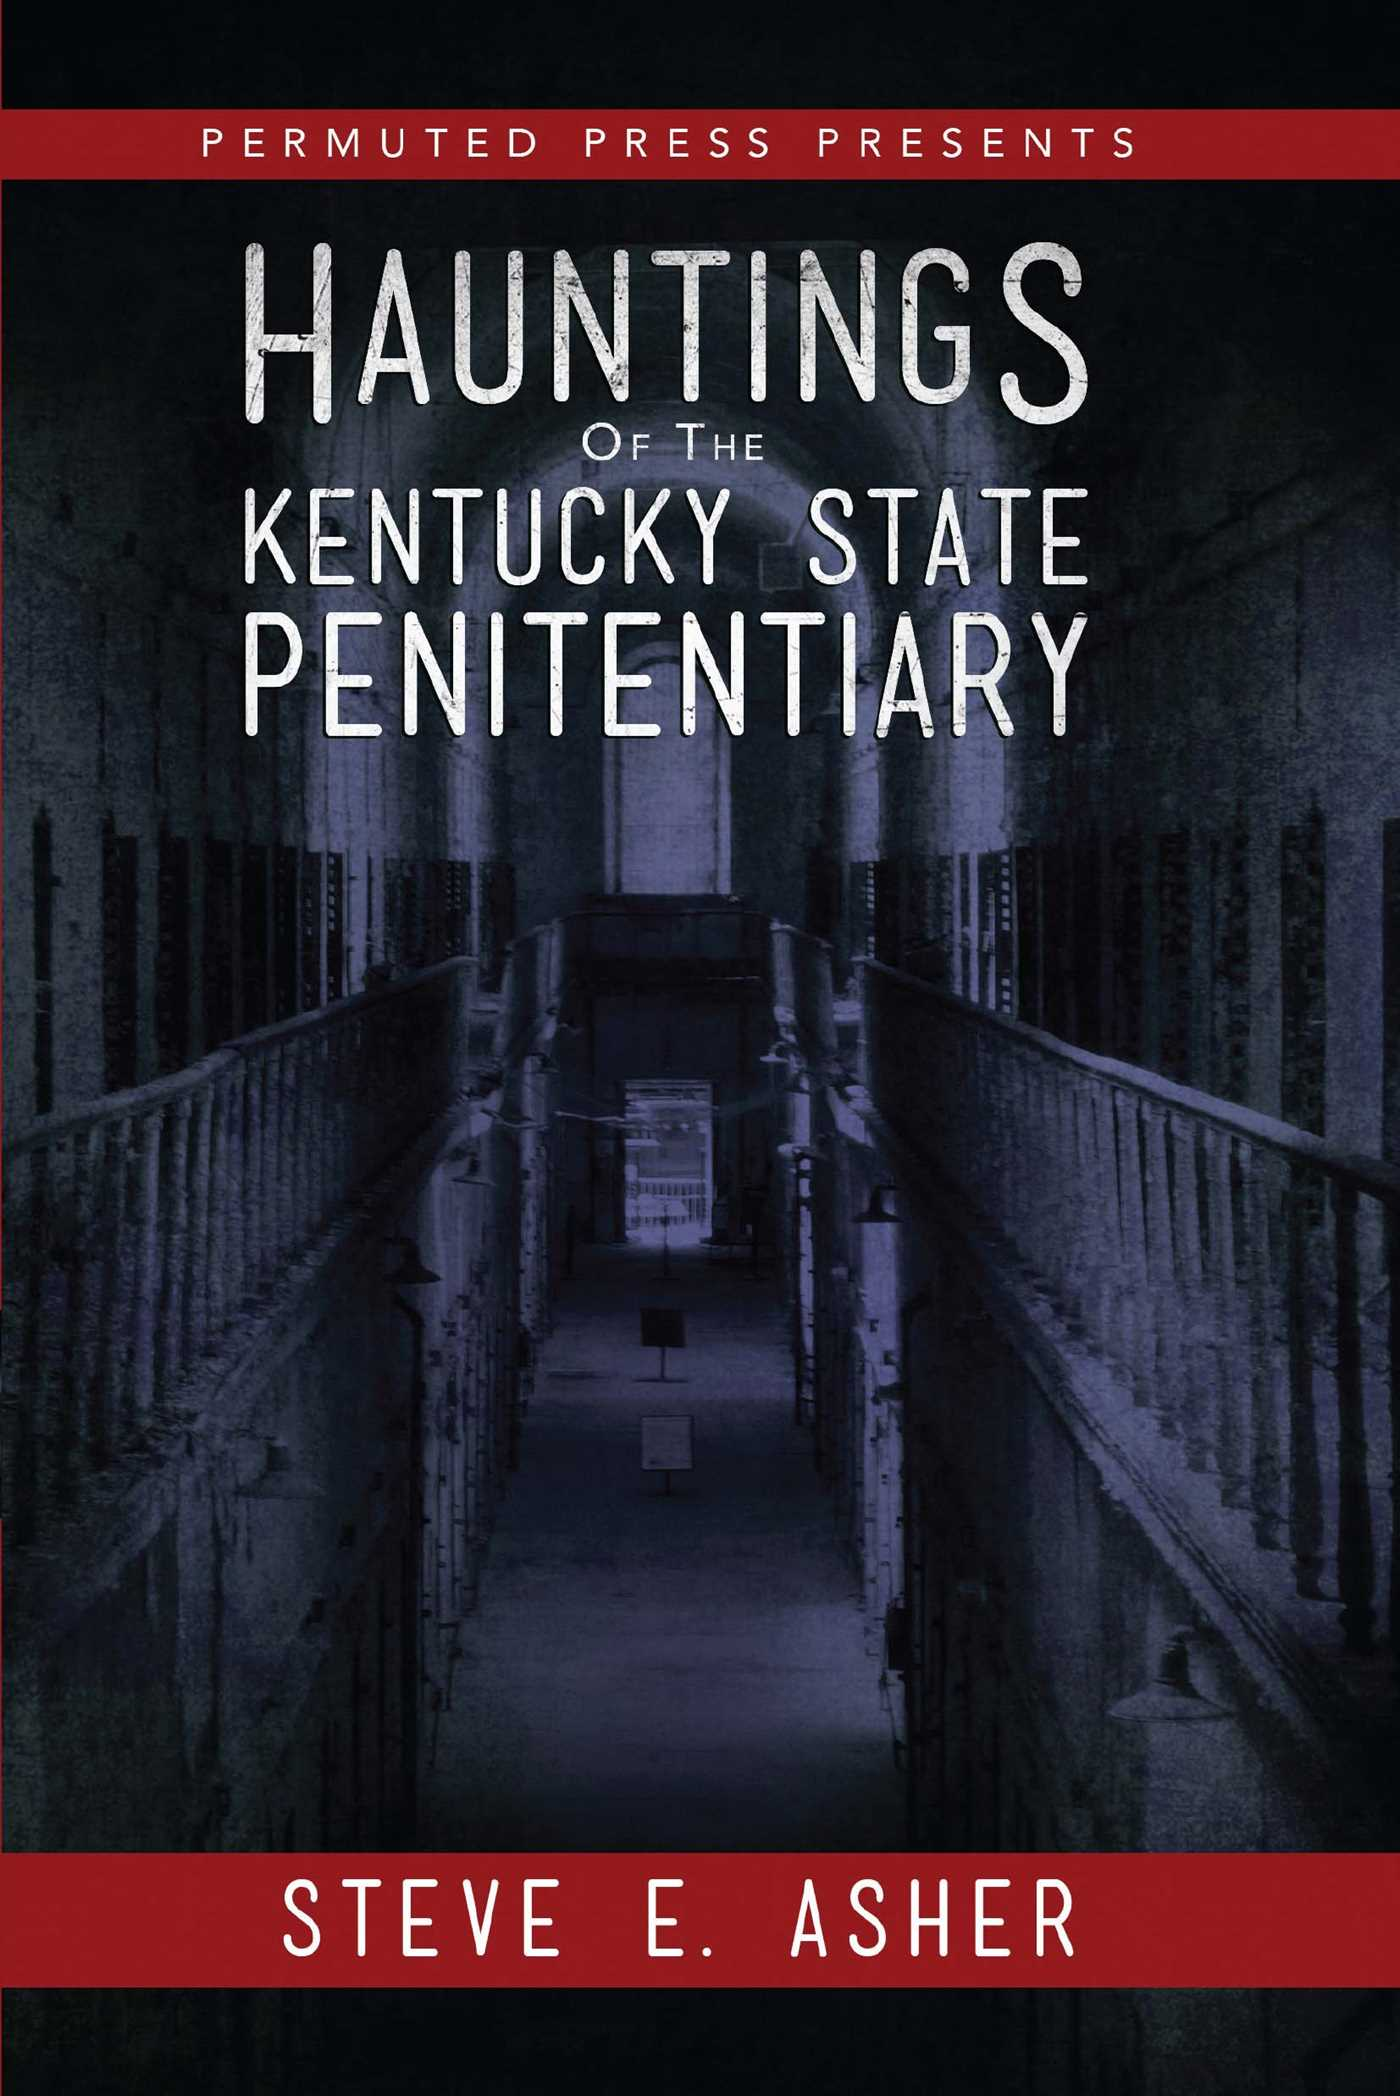 Hauntings of the kentucky state penitentiary 9781618686916 hr